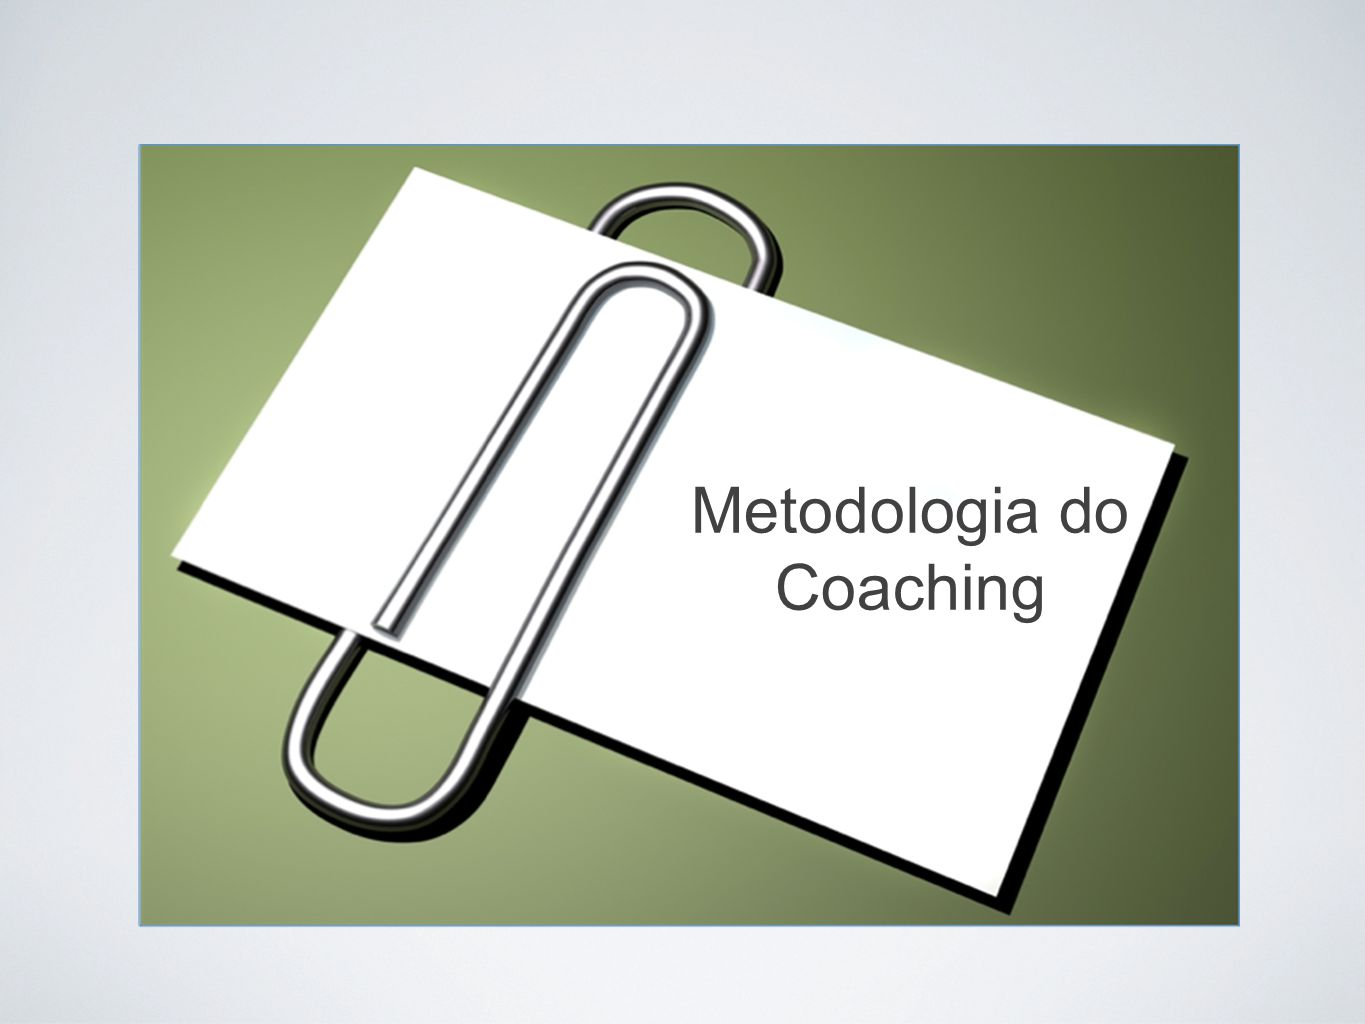 Metodologia do Coaching